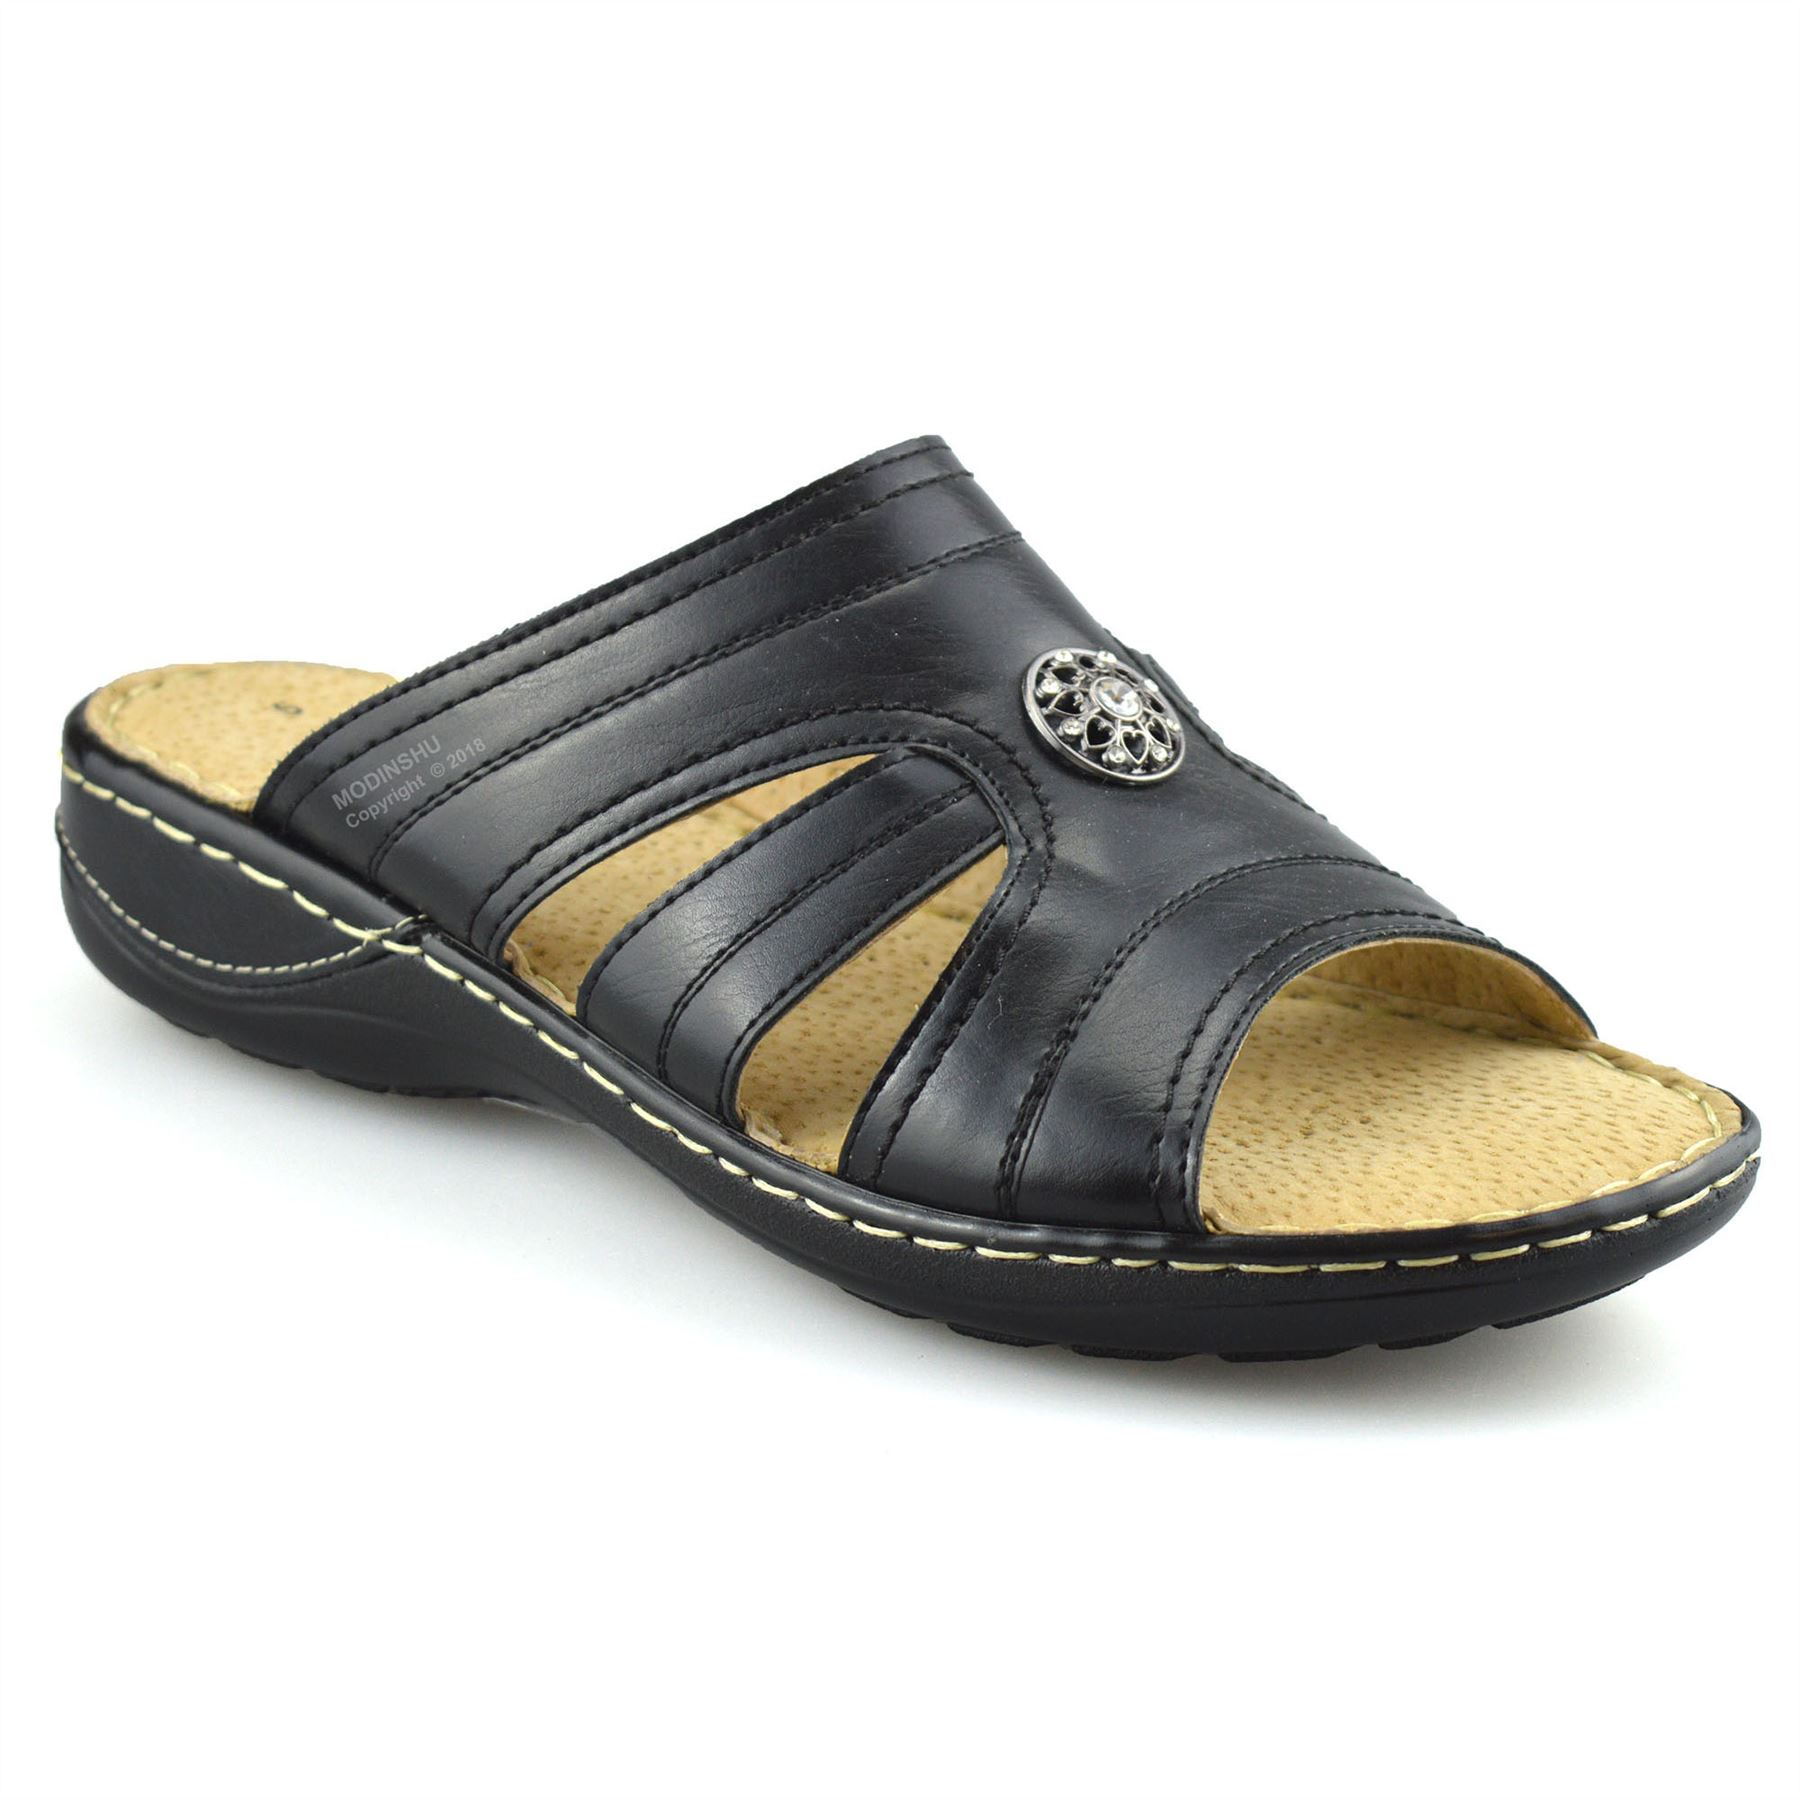 Ladies-Womens-Flat-Wedge-Heel-Wide-Fit-Slip-On-Summer-Mules-Sandals-Shoes-Size